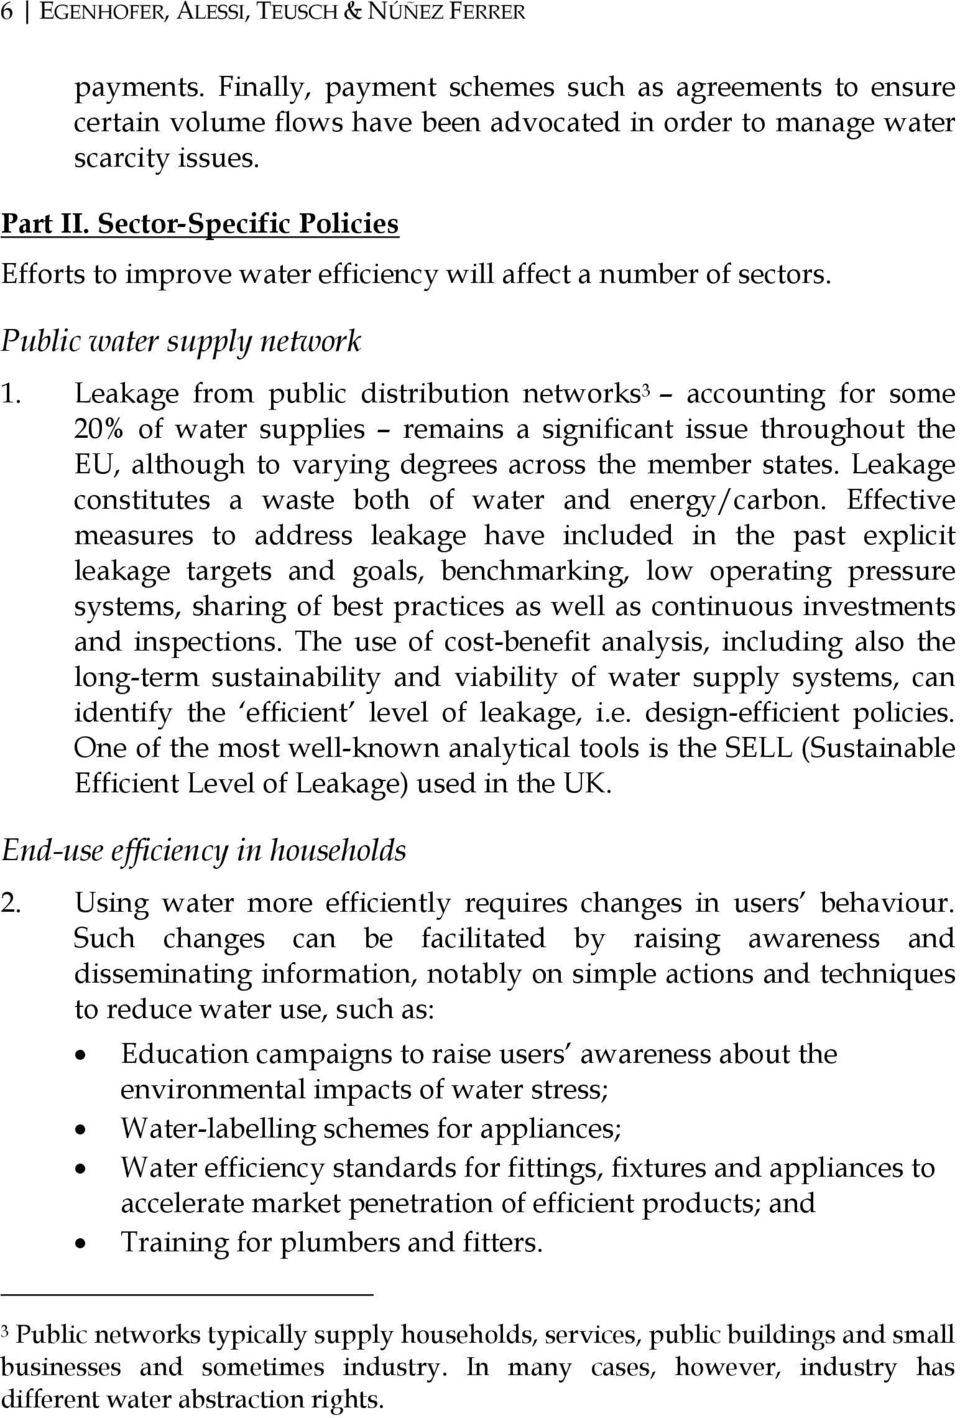 Leakage from public distribution networks 3 accounting for some 20% of water supplies remains a significant issue throughout the EU, although to varying degrees across the member states.